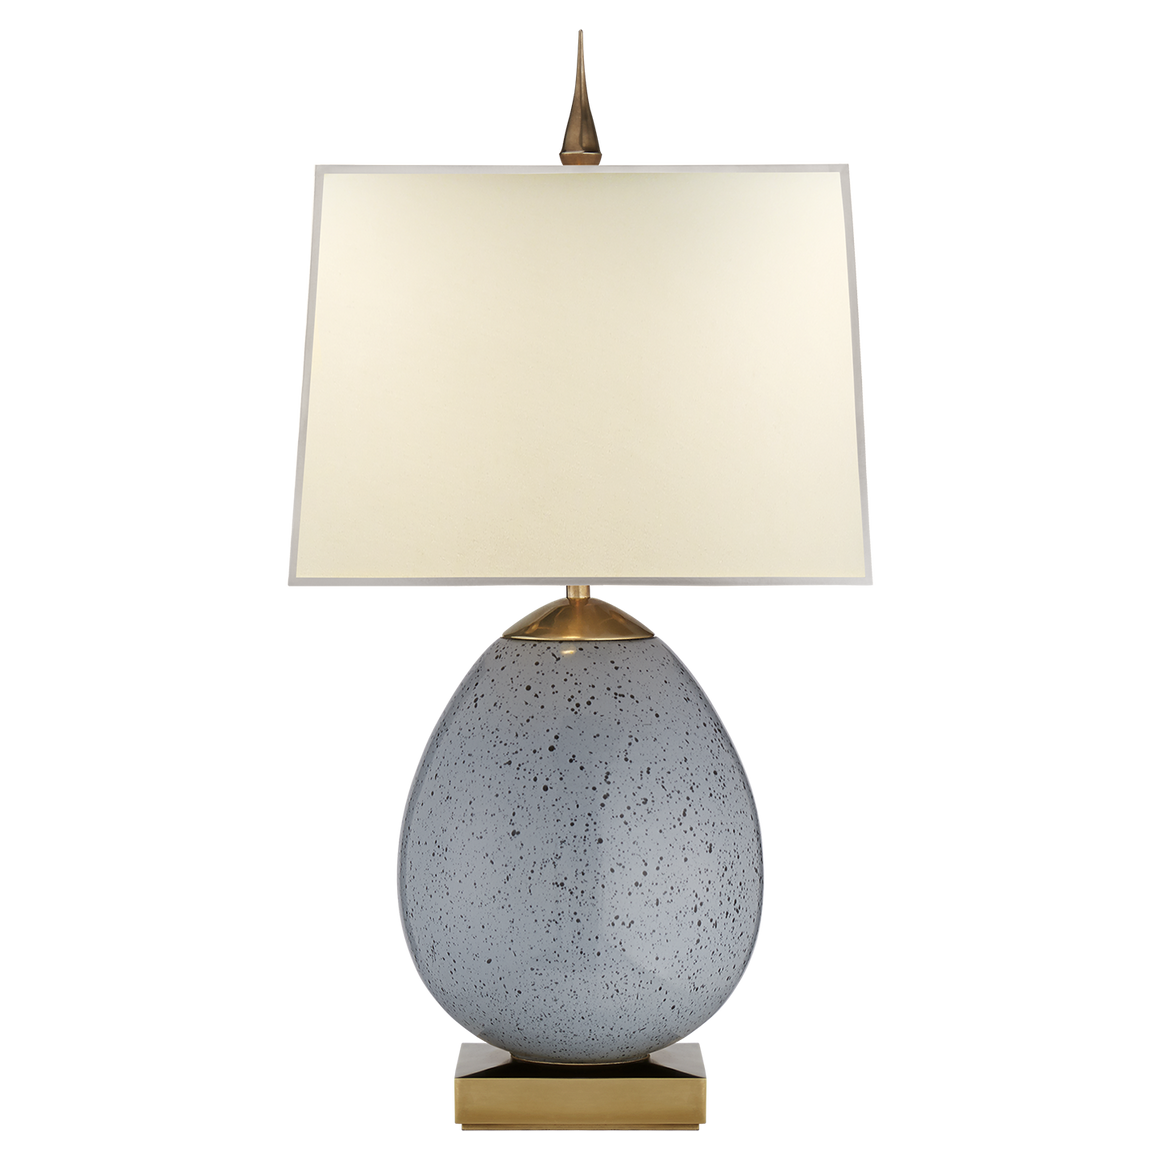 Ciro Small Table Lamp